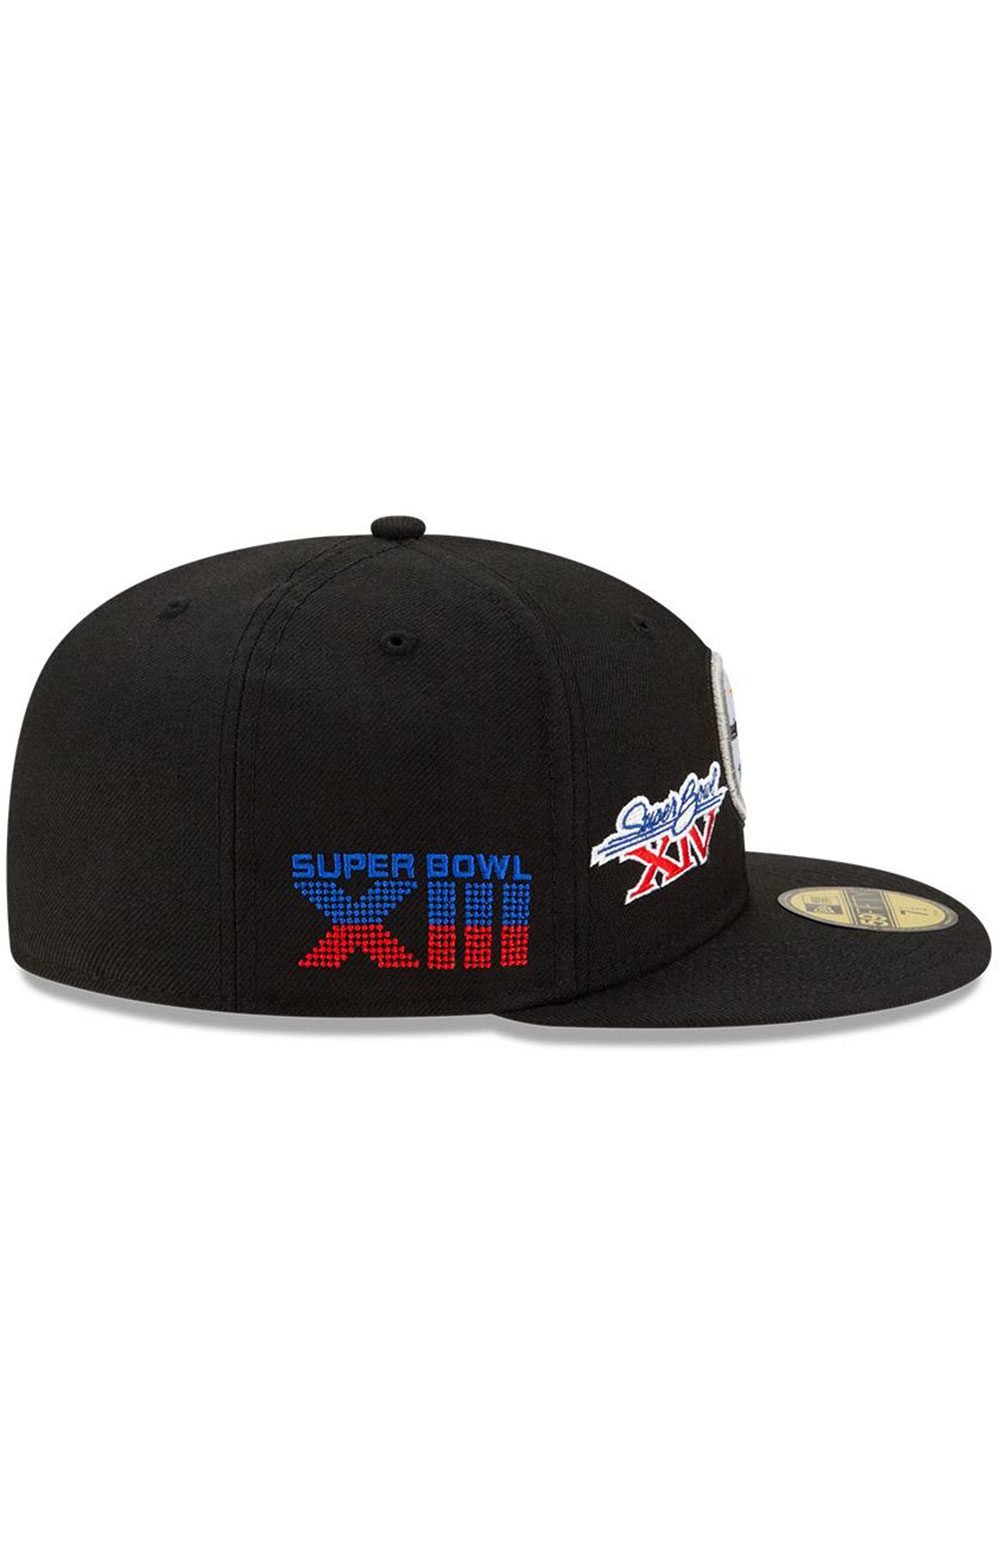 Pittsburgh Steelers Super Bowl Patch 59Fifty Fitted Hat - Black  6